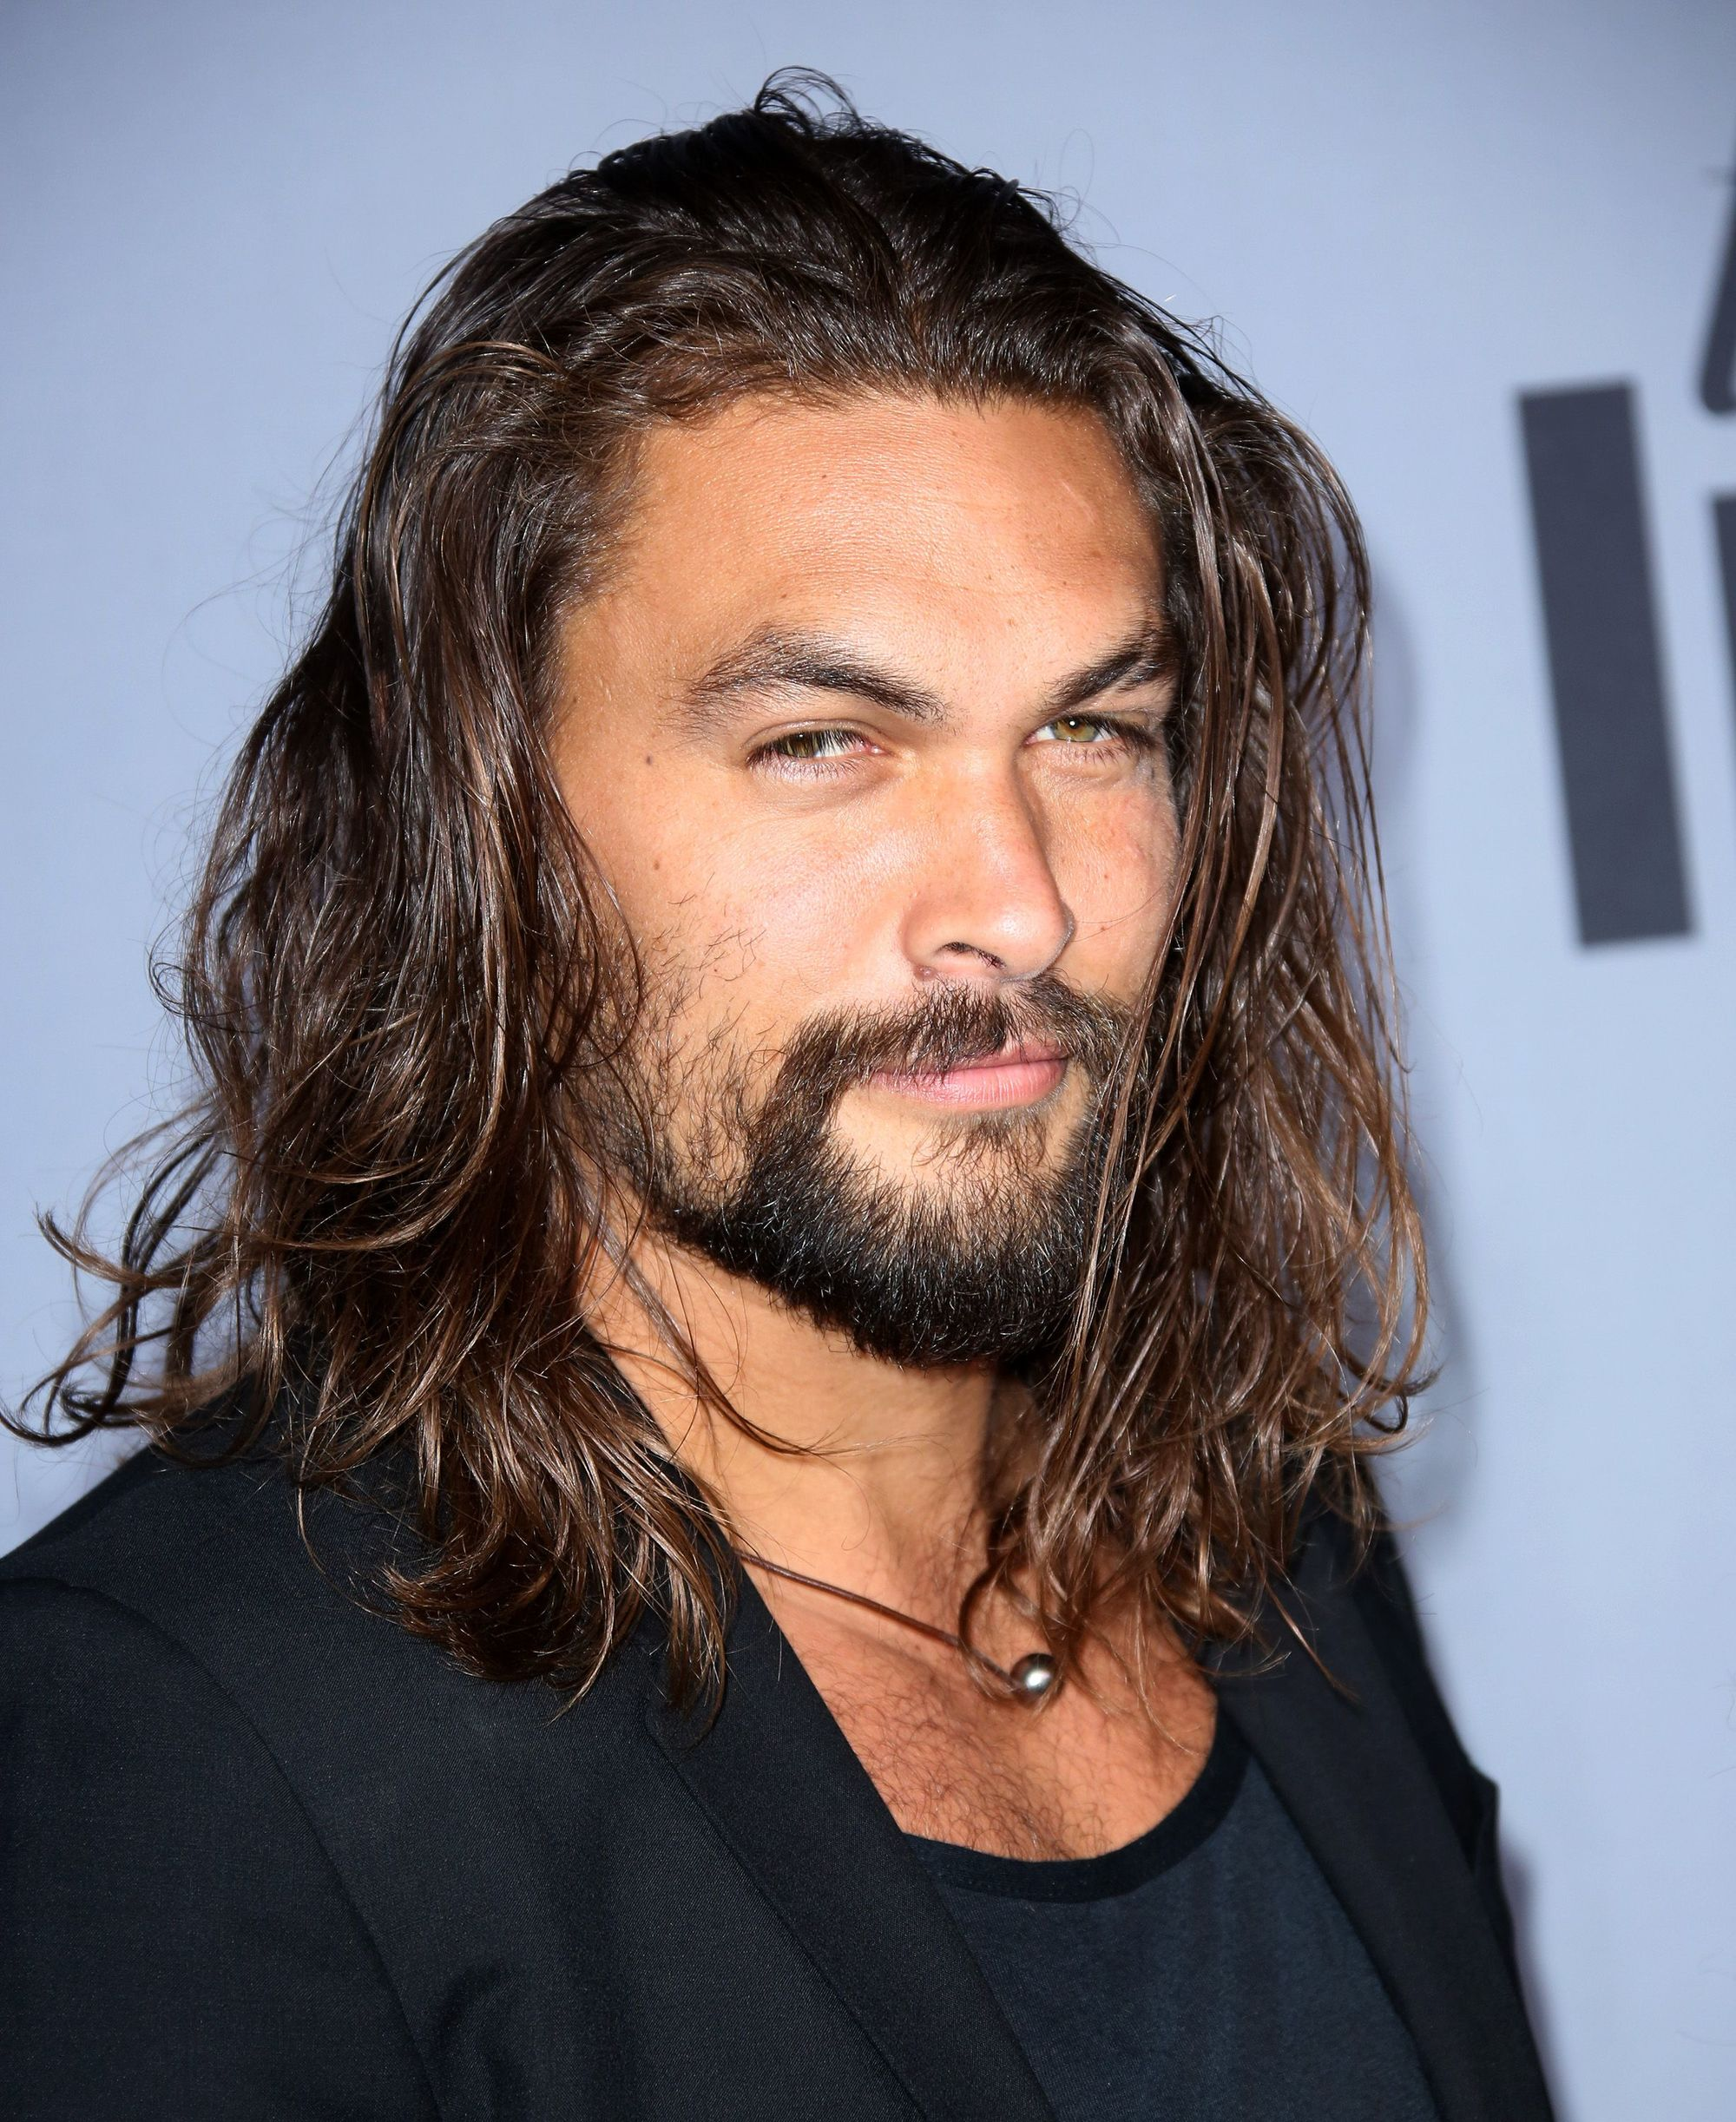 game of thrones actor jason momoa with long wild dark hair and heavy facial hair